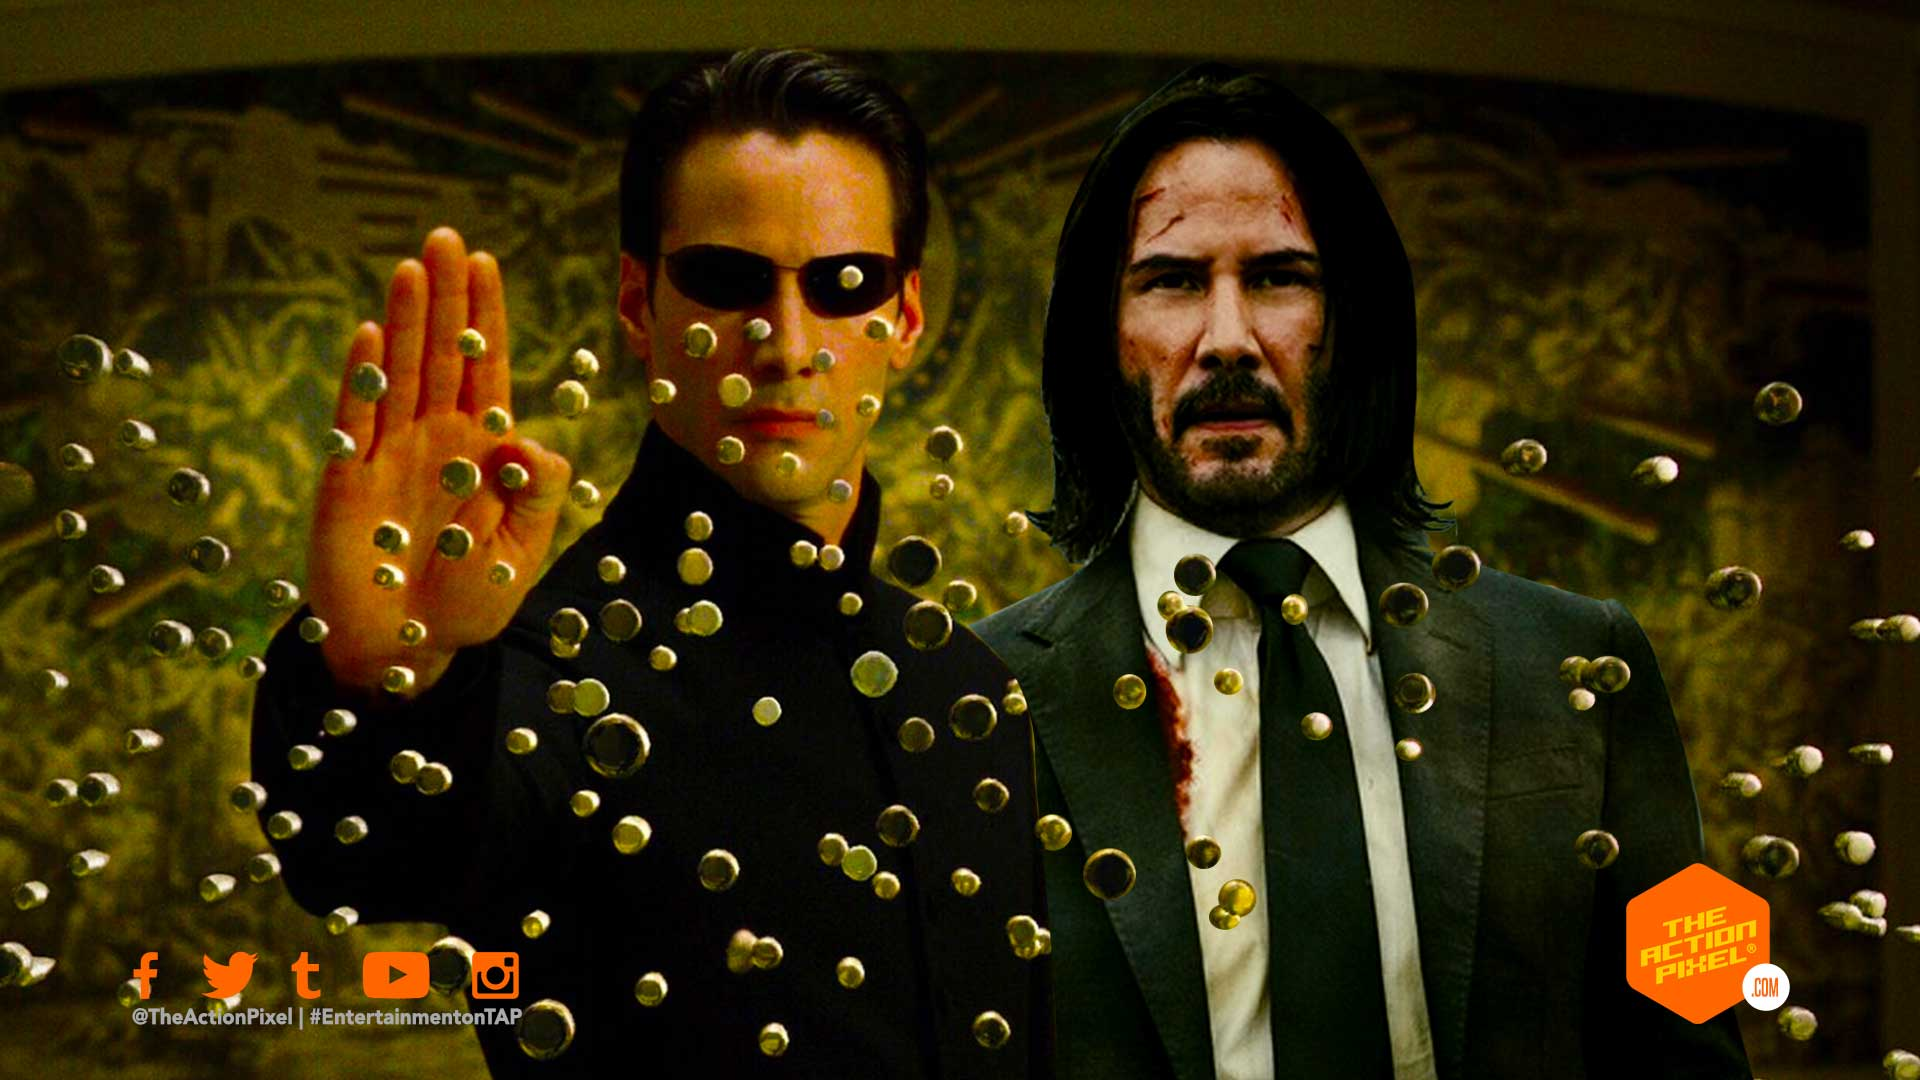 keanu reeves,matrix, john wick, the action pixel, entertainment on tap,